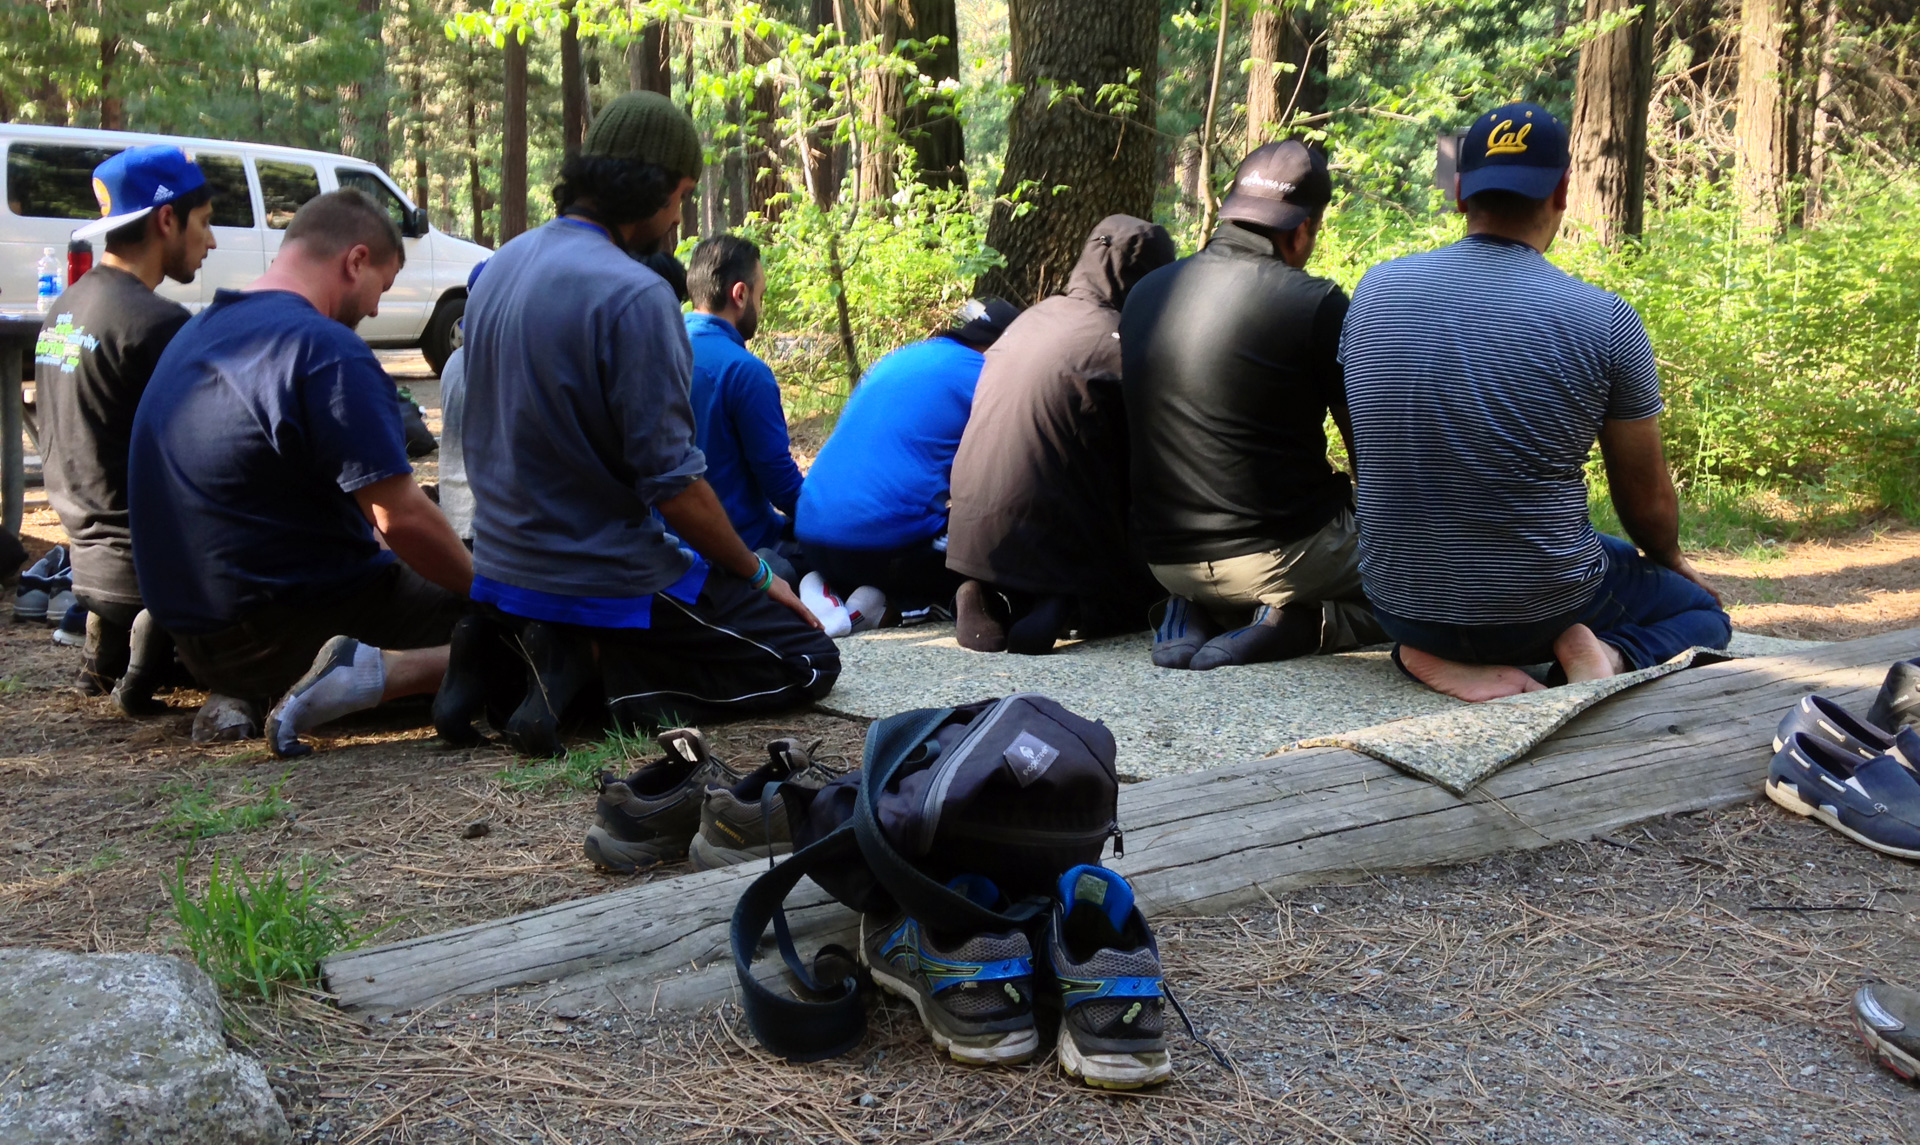 Young Muslim men pray at a campsite in Yosemite.